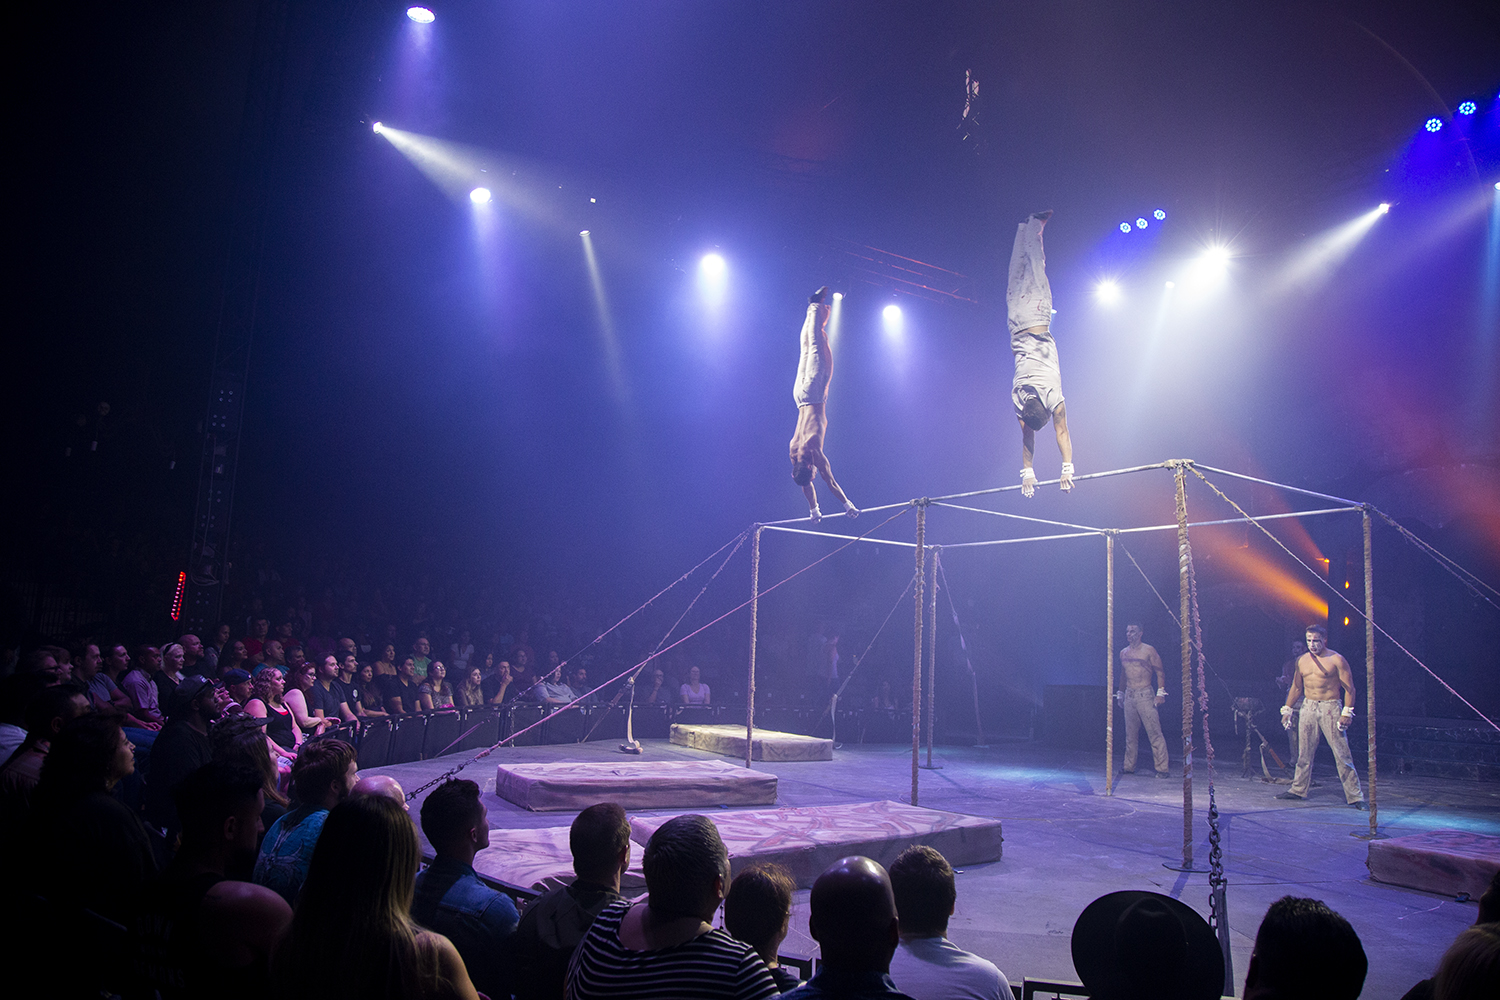 The+acrobats%2C+dressed+and+made+to+look+like+zombies%2C+captivated+the+audience+as+they+performed.